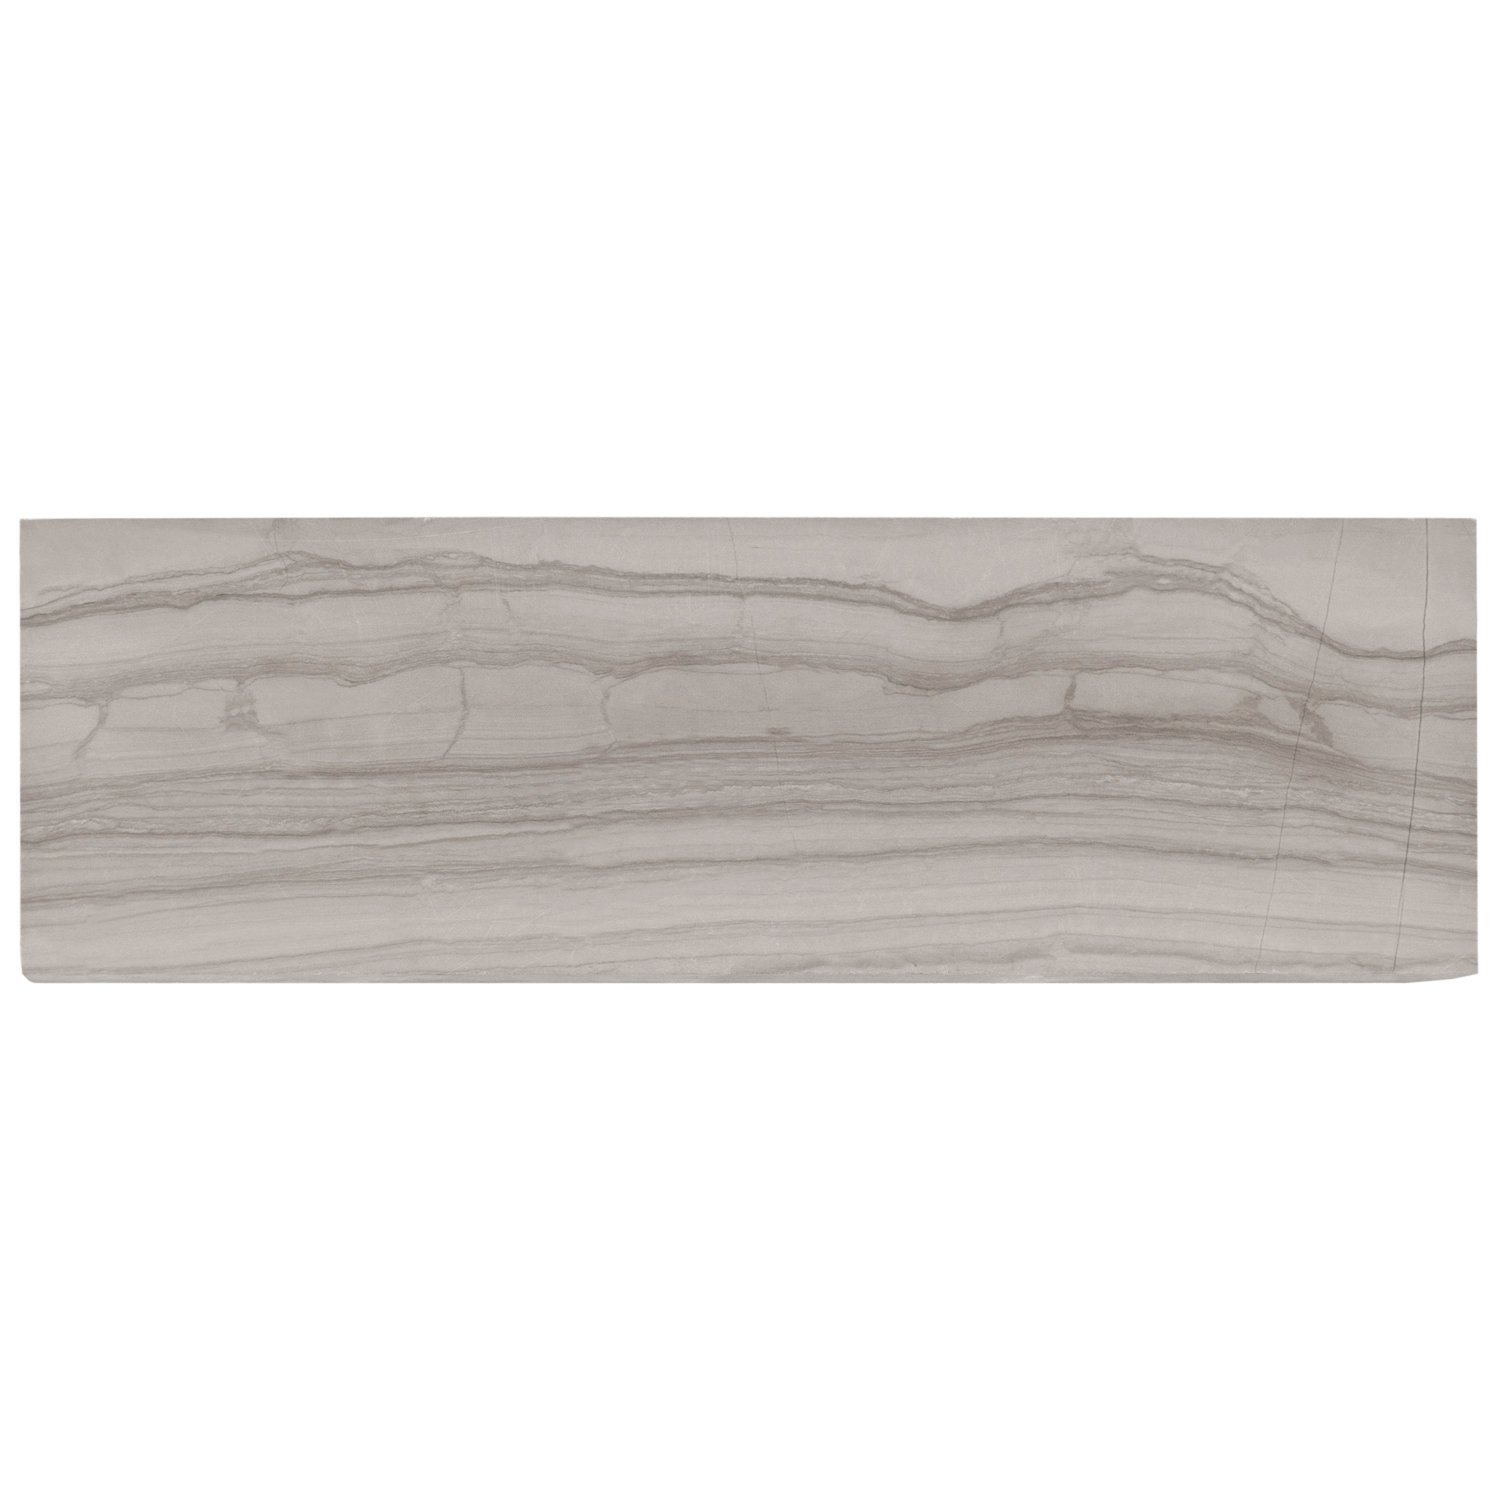 Valentino Gray Honed Marble Tile - 3 x 9 - 931100470 | Floor and Decor